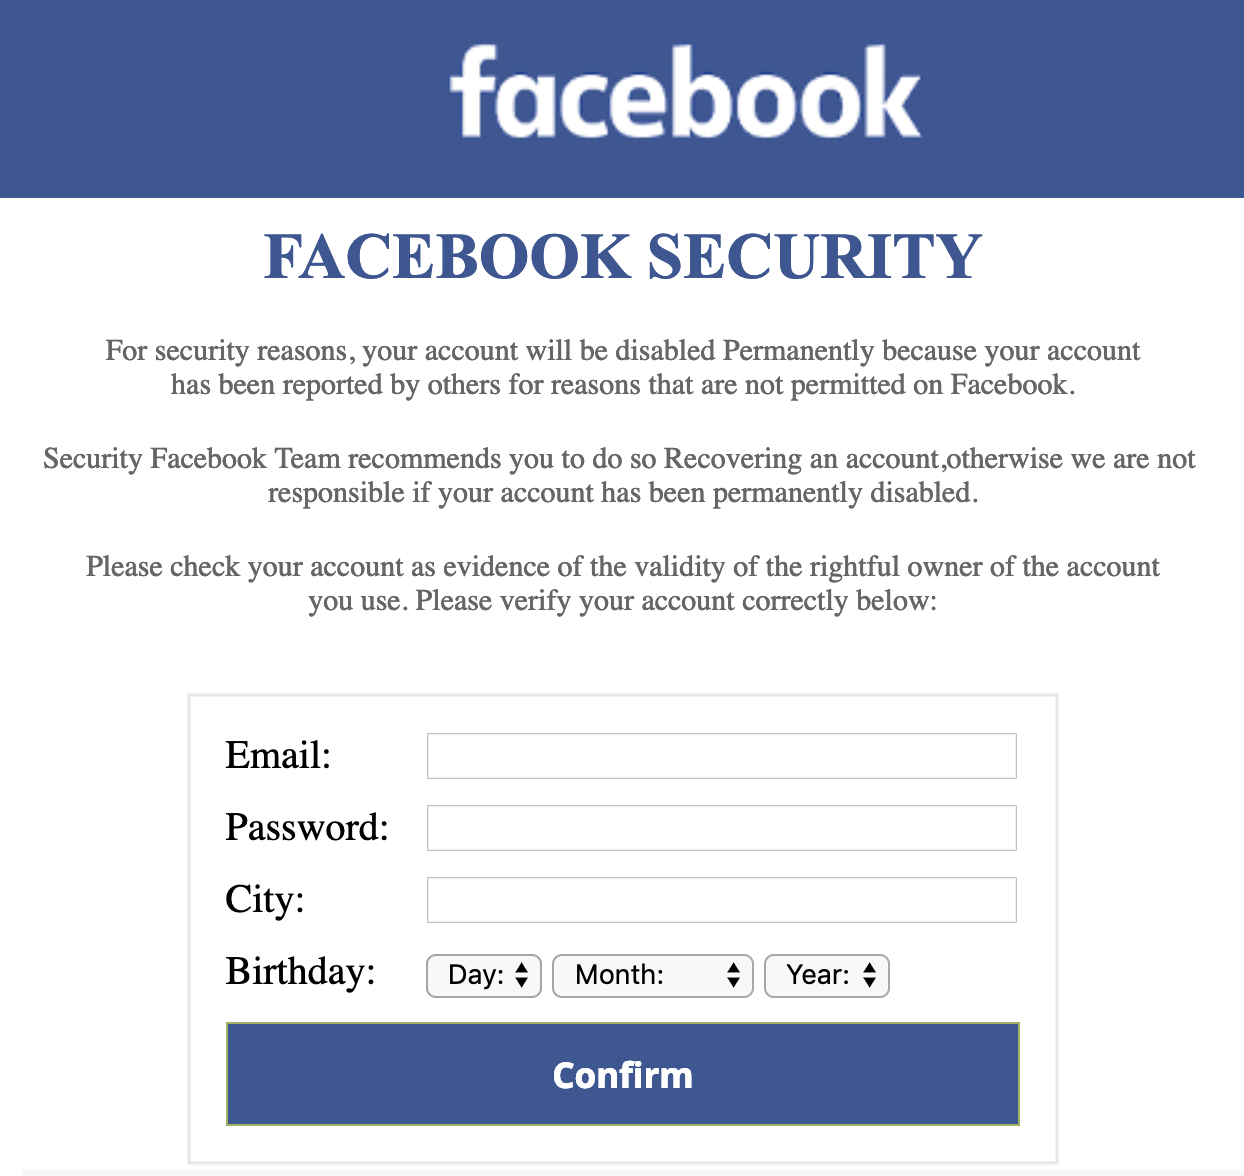 Facebook Policy Violation Warning Text Message: Legit? - Ask Dave Taylor